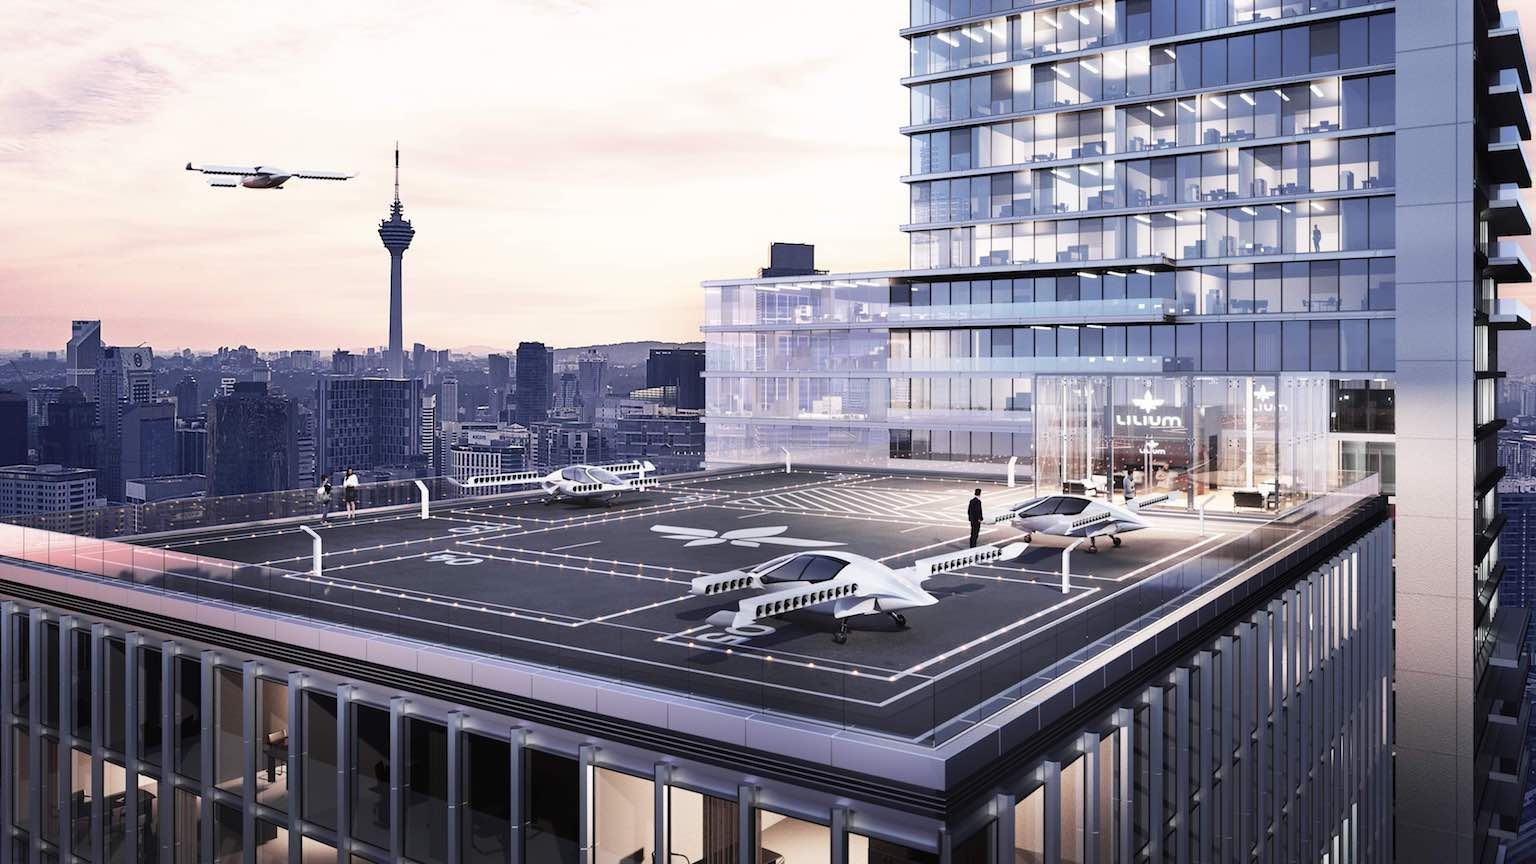 Lilium cements drone taxi ambitions with Airbus and Audi hires